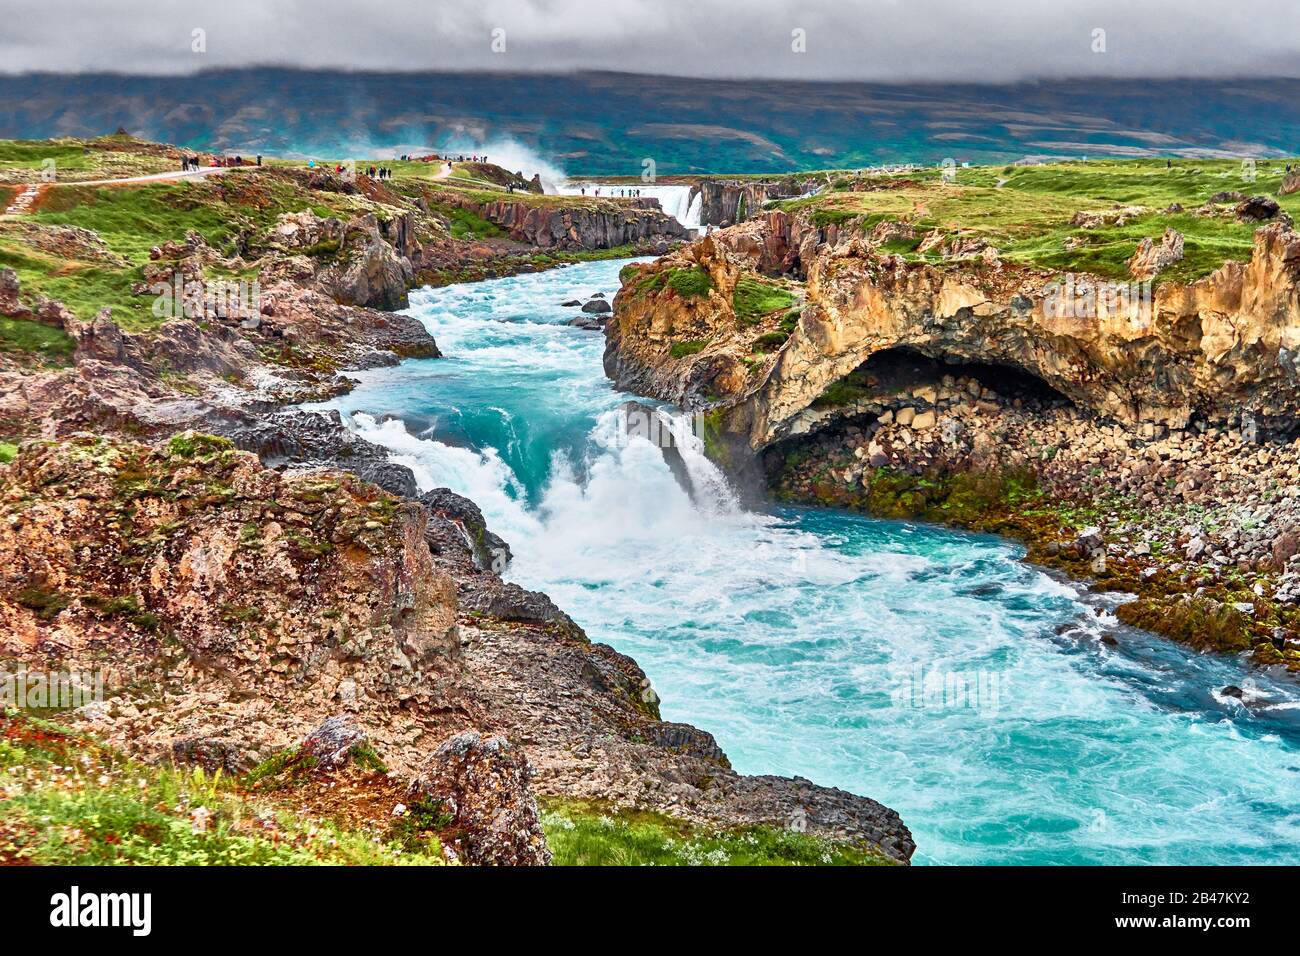 The Goðafoss is one of the most spectacular waterfalls in Iceland. It is located in the Bárðardalur district of North-Central Iceland at the beginning of the Sprengisandur highland road. The water of the river Skjálfandafljót falls from a height of 12 meters over a width of 30 meters. Stock Photo